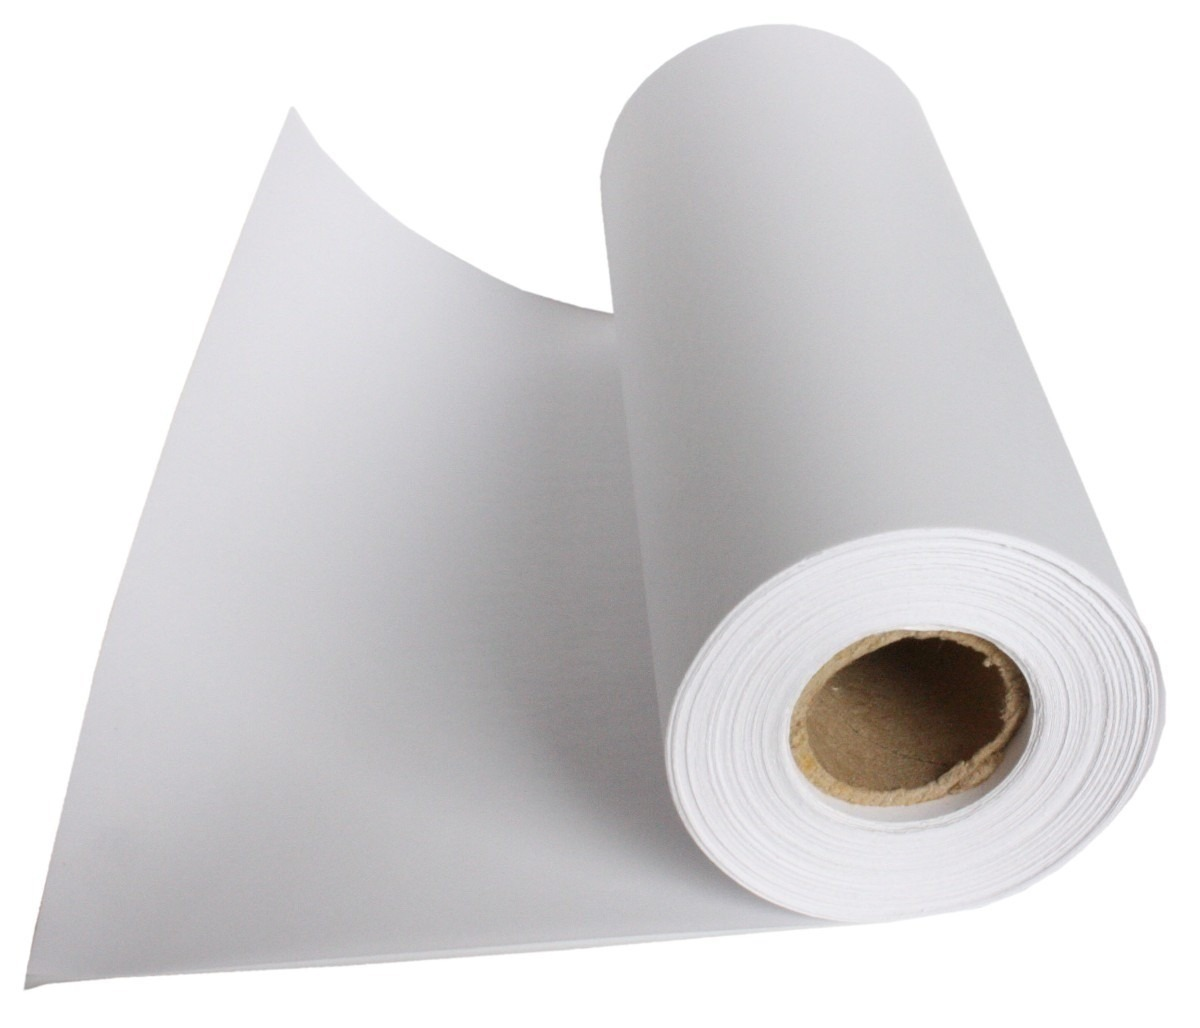 Rollo 24 Papel Neutral Mate Inkjet De 120gr En Rollo 24 X30m U S